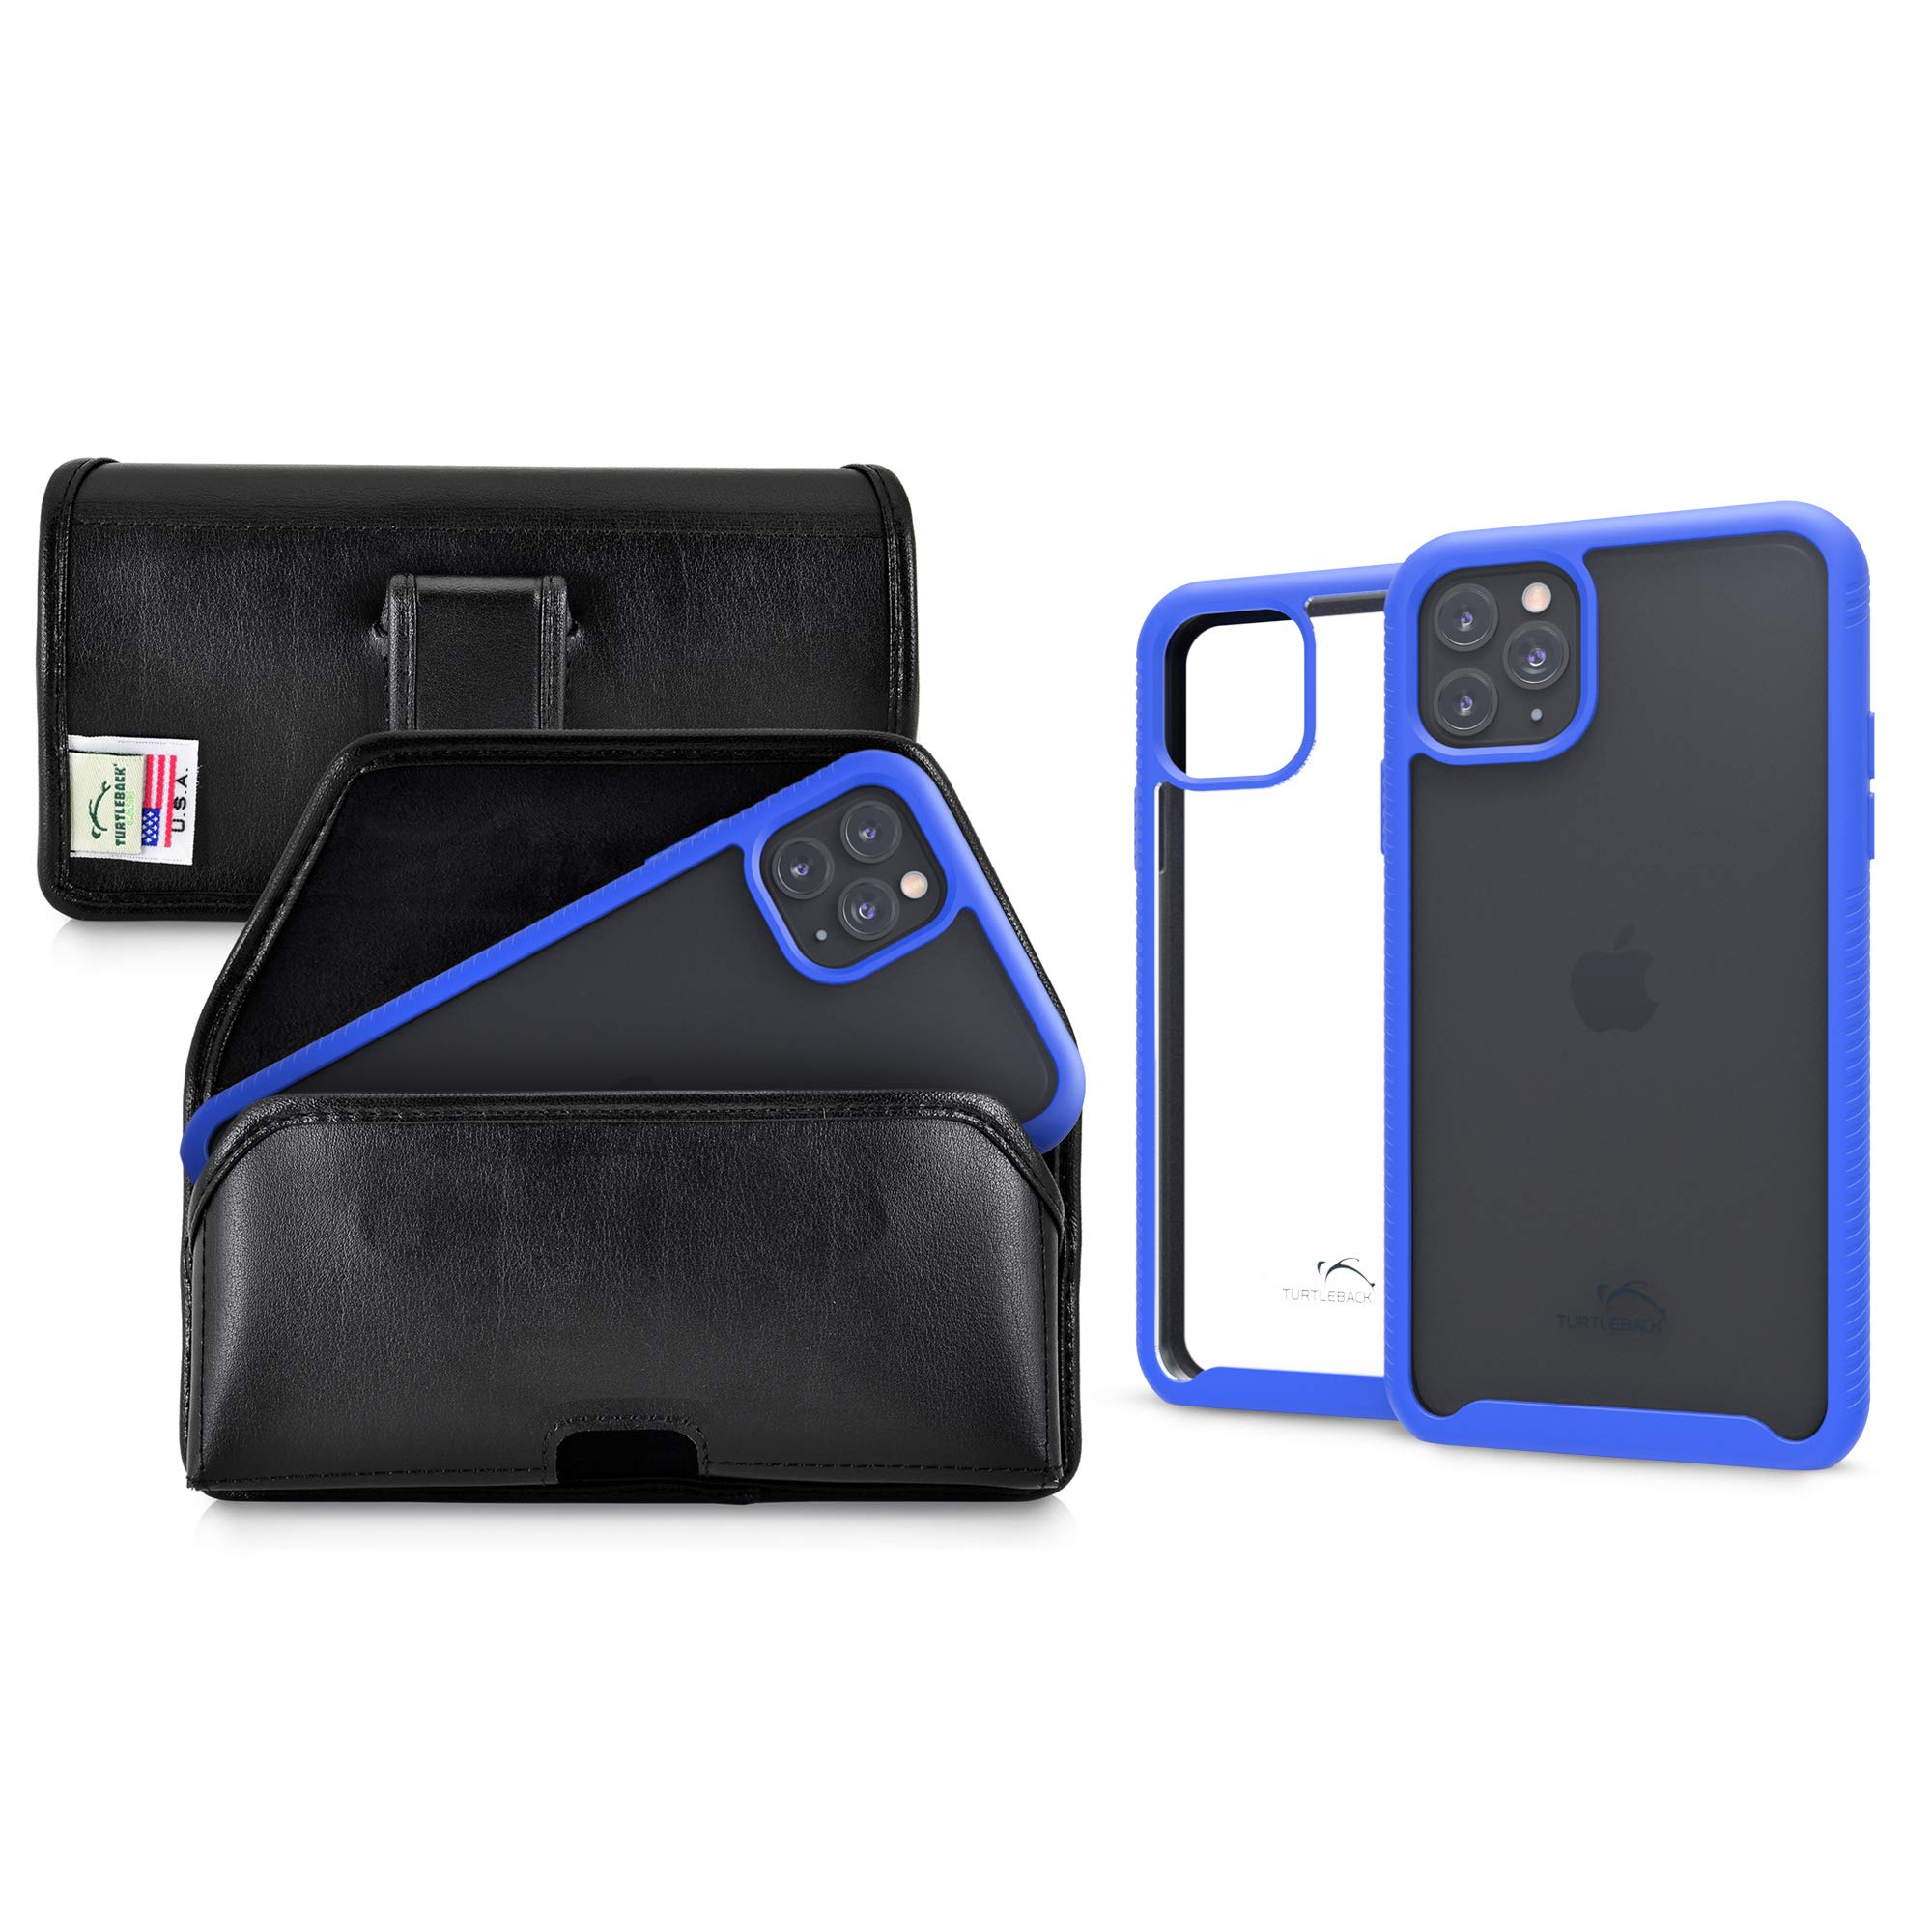 Turtleback Tough Defense Case/Holster Combo Designed for New iPhone 11 Pro (2019) 5.8 Inch Military Grade Drop Tested Ultra Clear Back Fitted in Leather Belt Pouch Executive Belt Clip-Horizonal/Blue